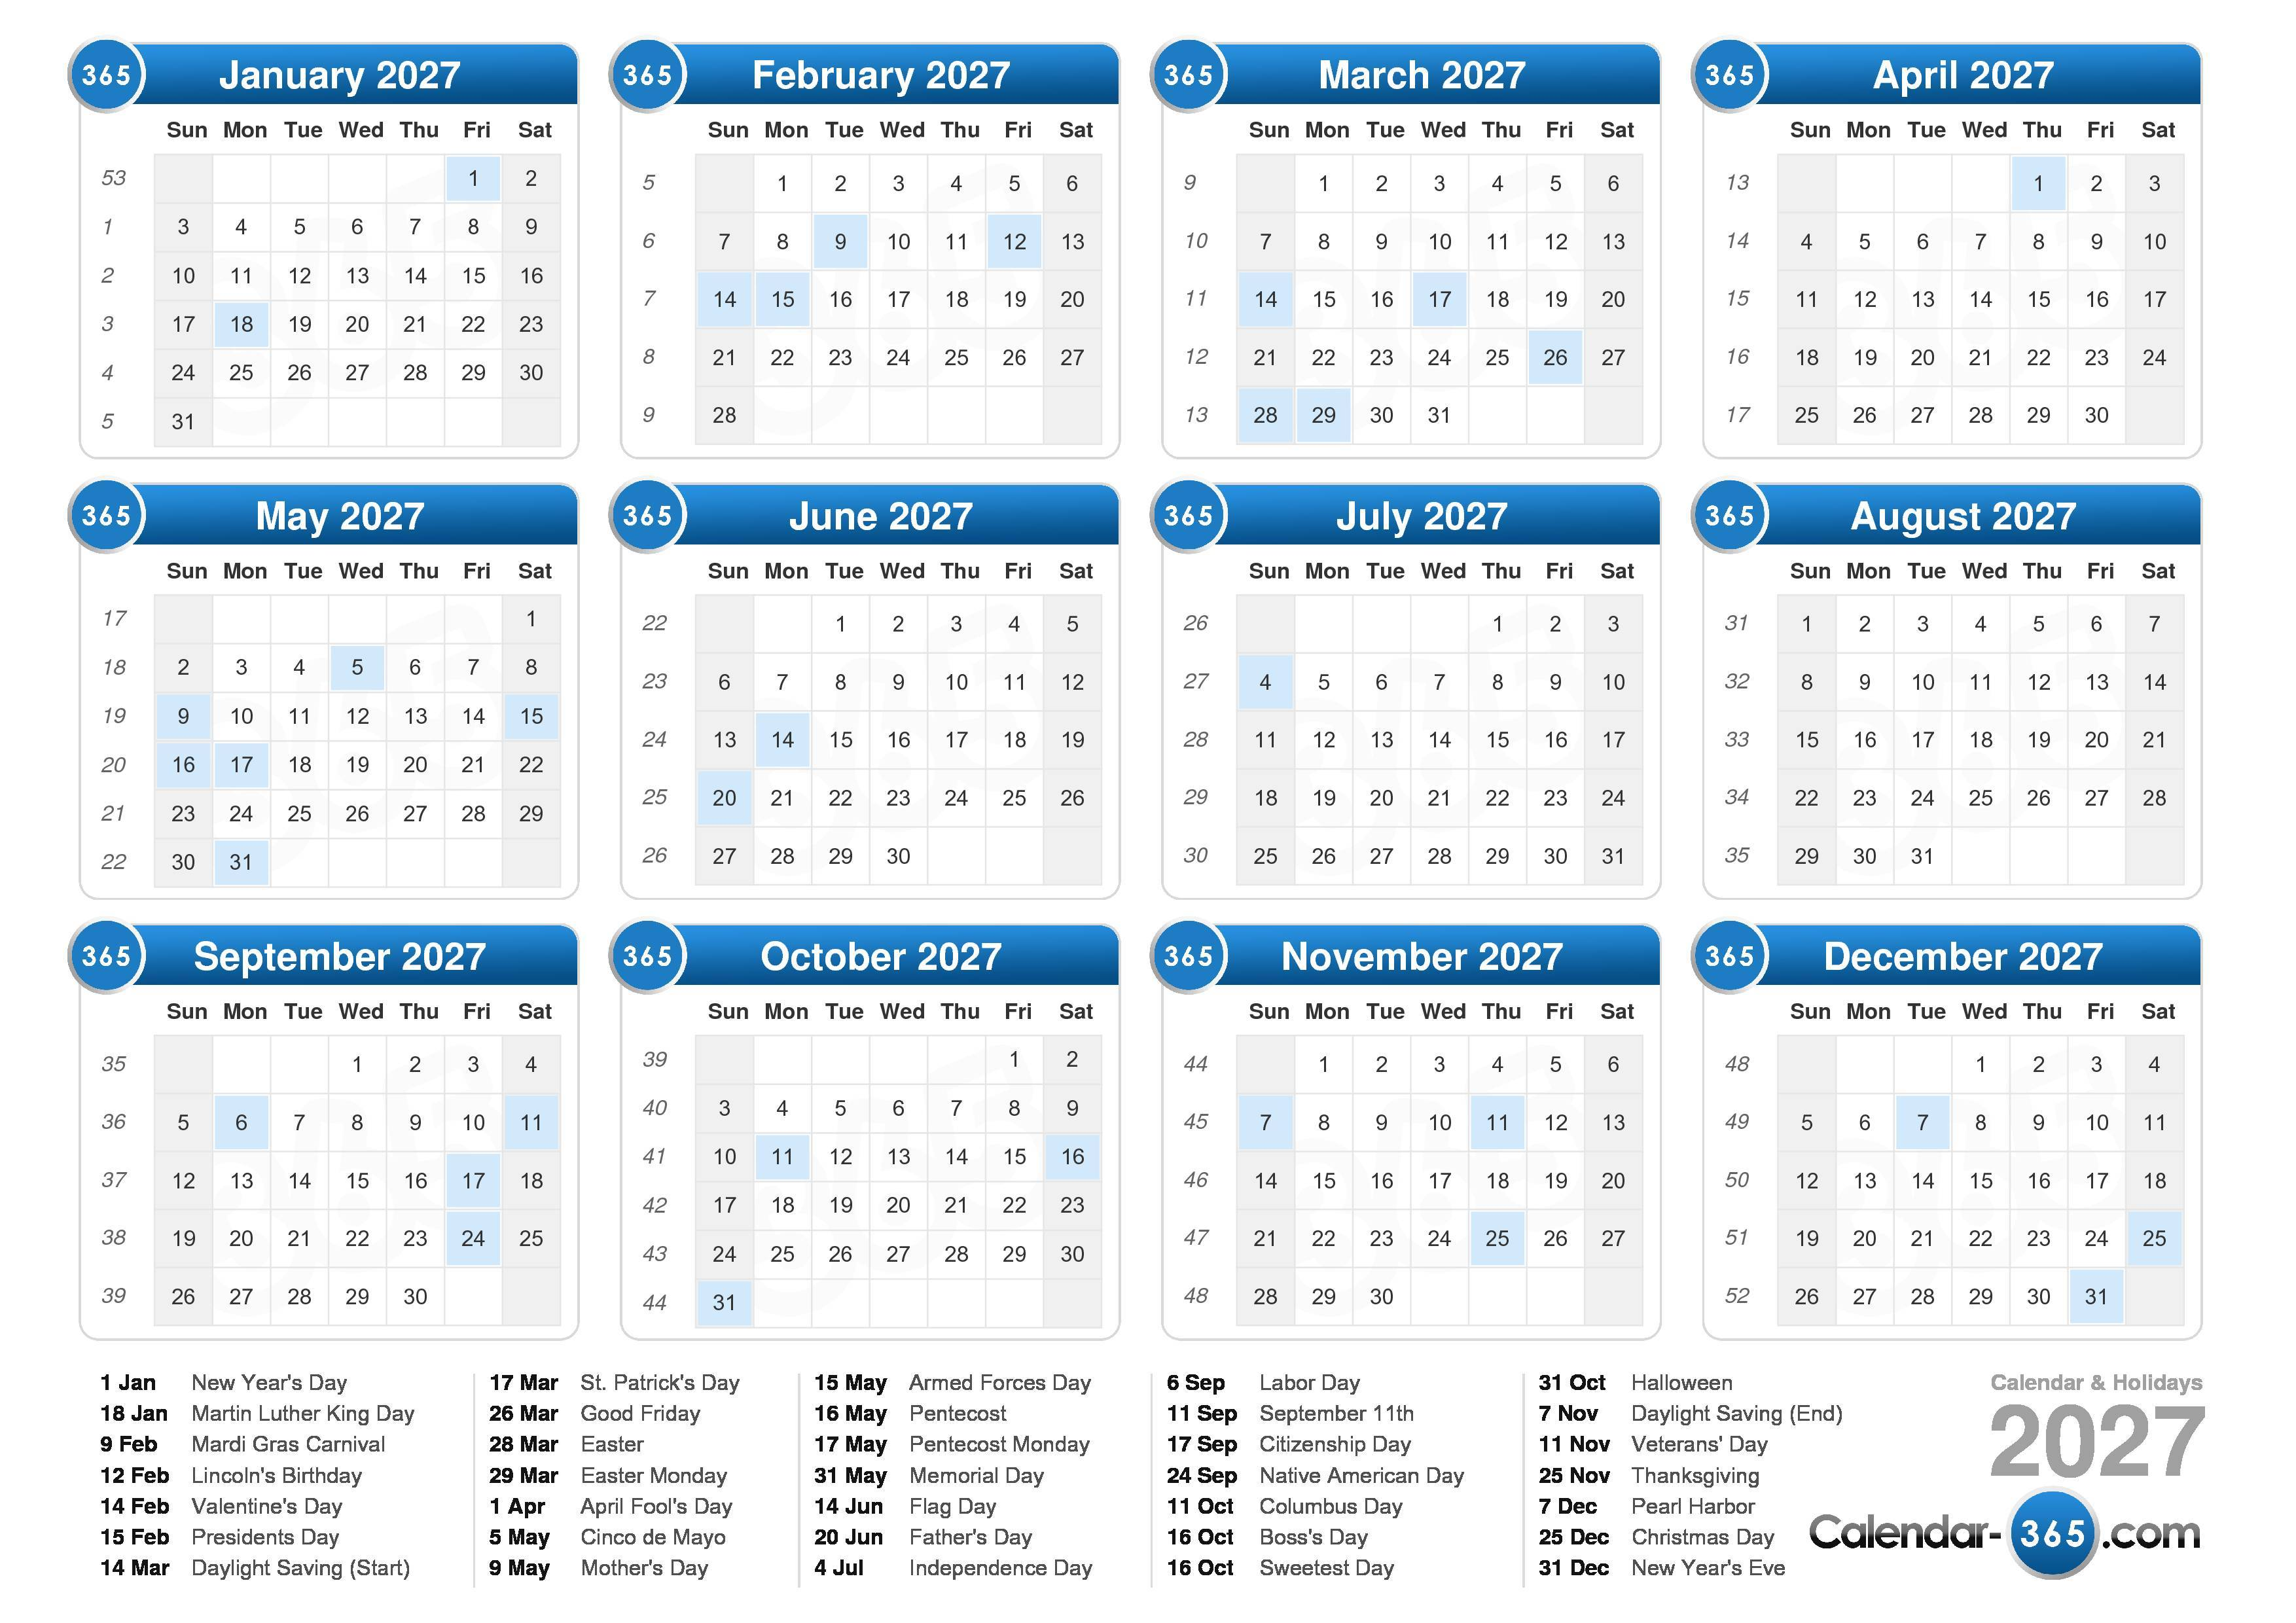 Download the 2027 Calendar with holidays . (Landscape format - 1 Page)